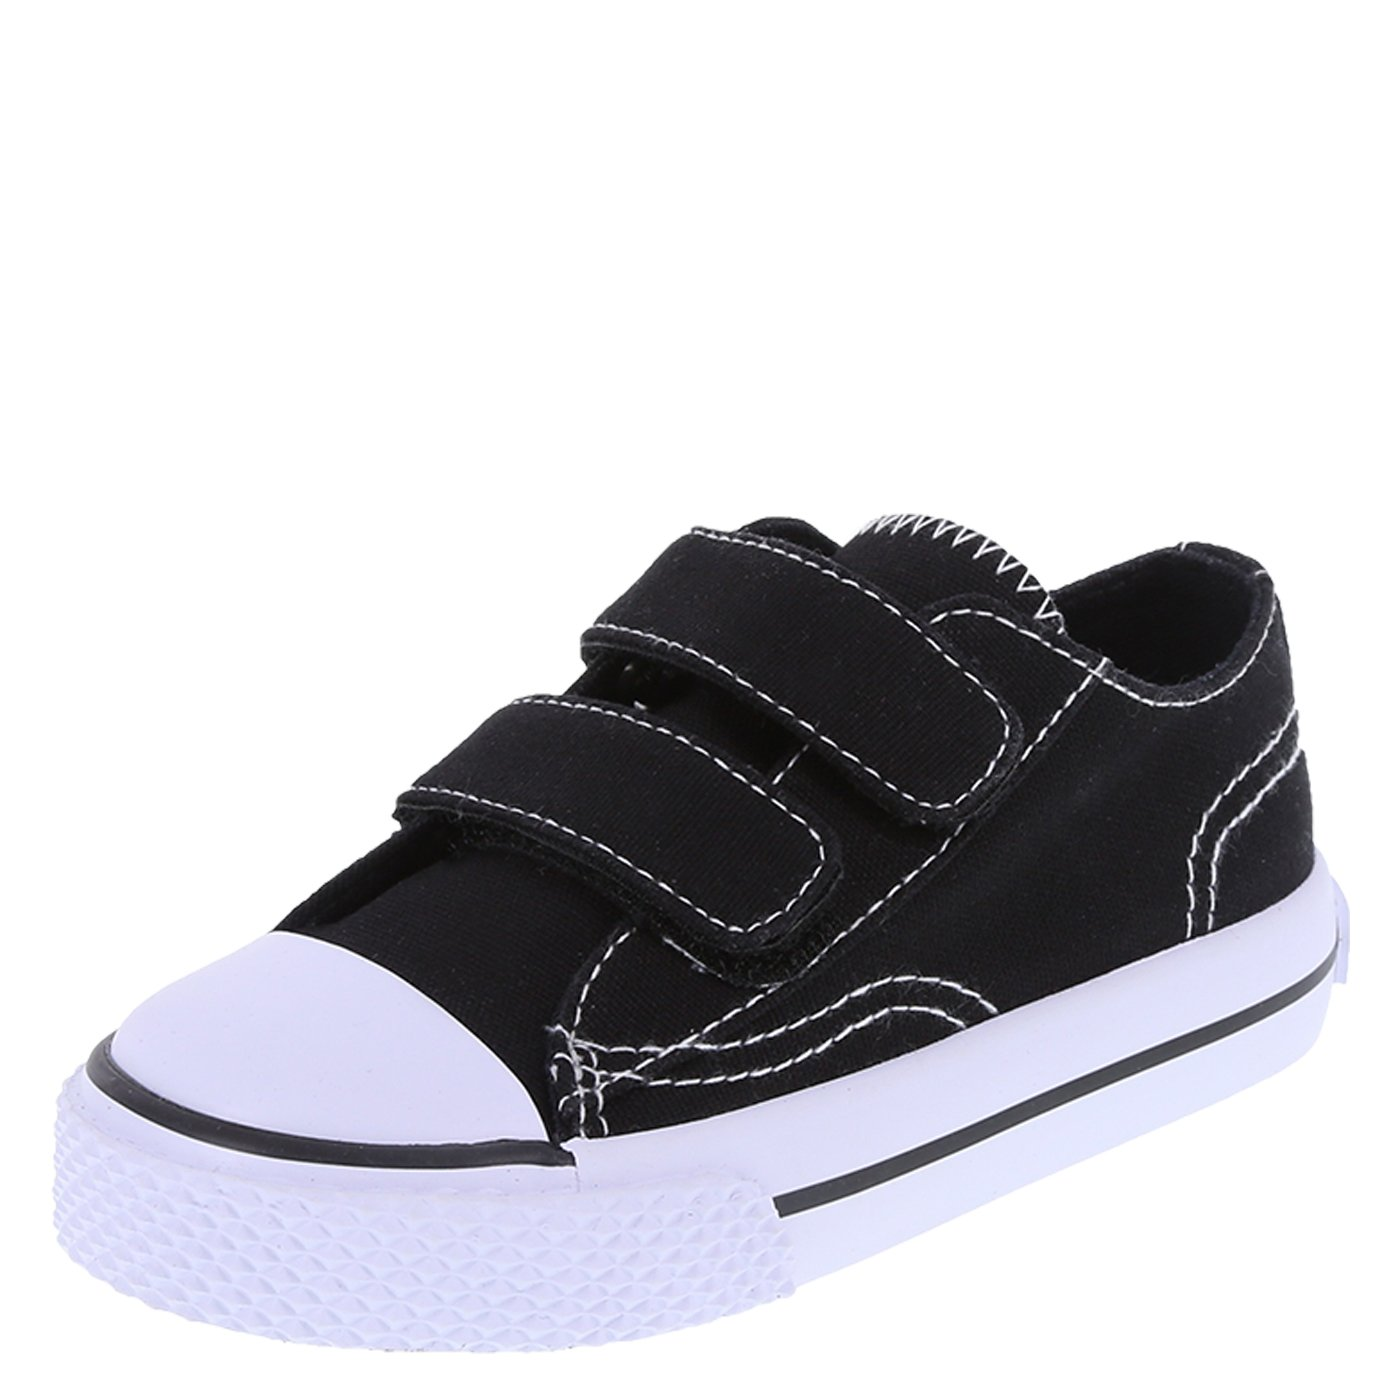 Airwalk Kids' Black White Kids' Toddler Legacee Sneaker 9 Regular